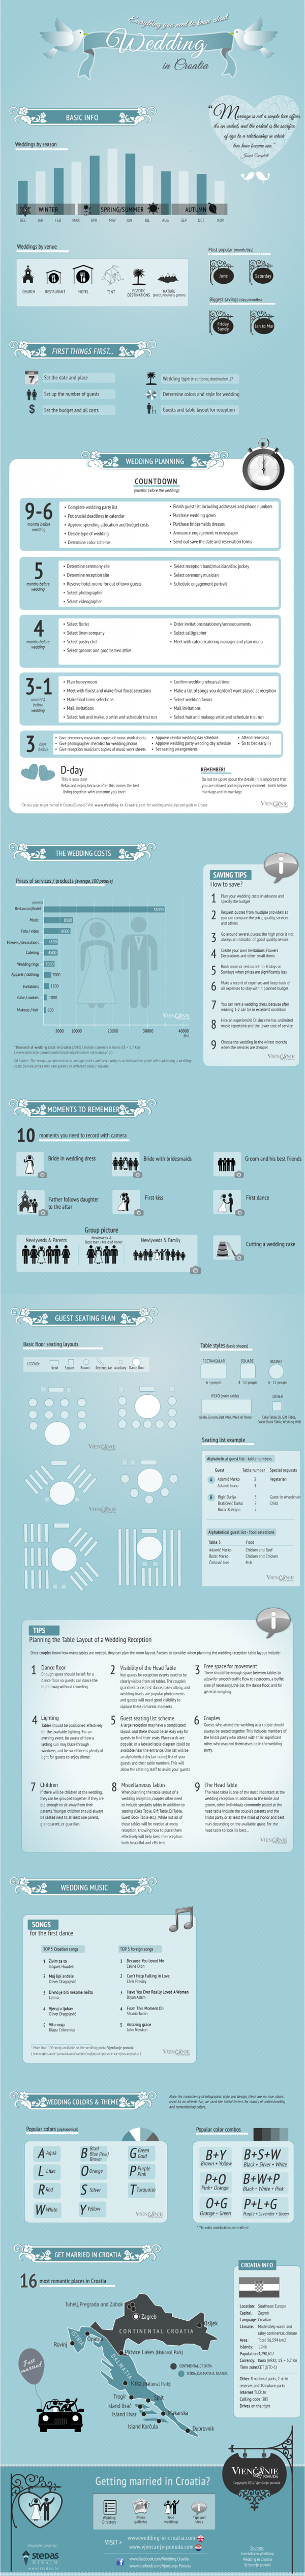 Infographic: Everything you need to know about getting married in Croatia